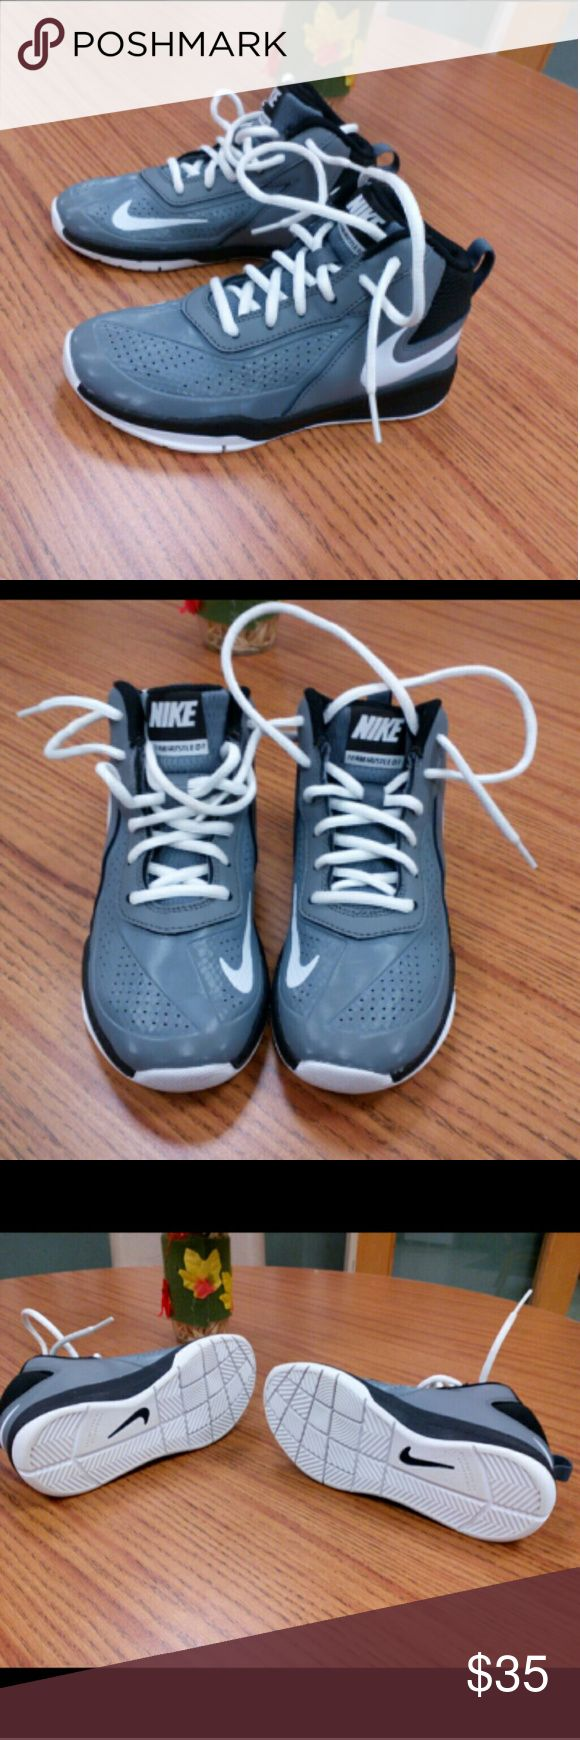 Nike Team Hustle D7 kids sneakers! Gray black & White mid tops with white laces! Prestine Condition! Nike Shoes Sneakers